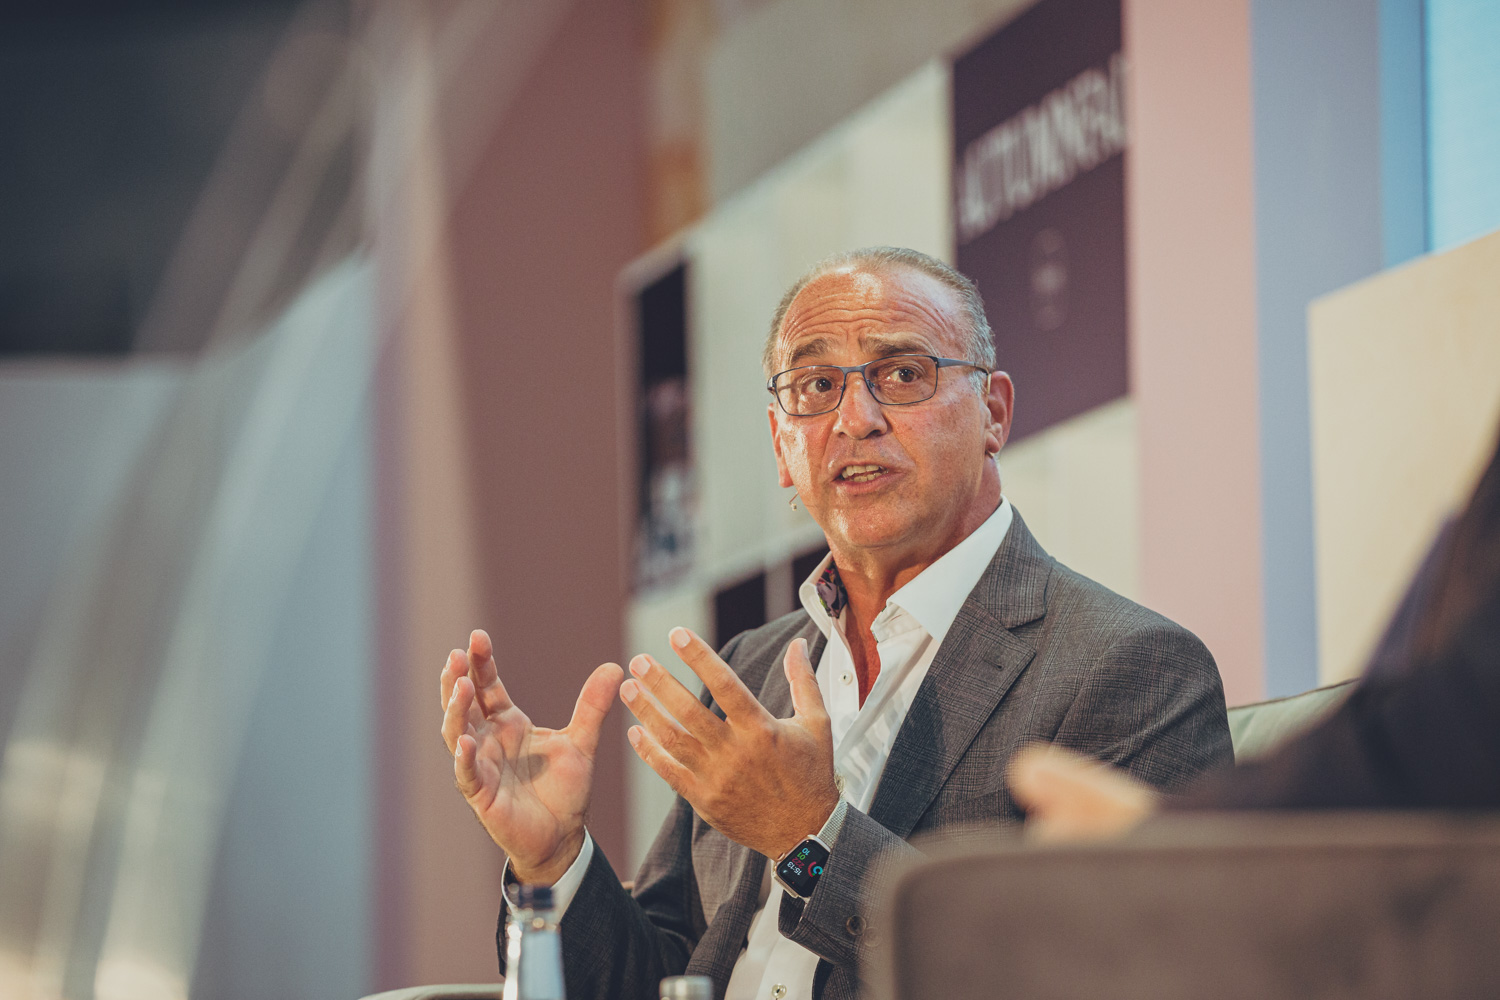 Above: Theo Paphitis on the Inspiring Retail stage at the show.